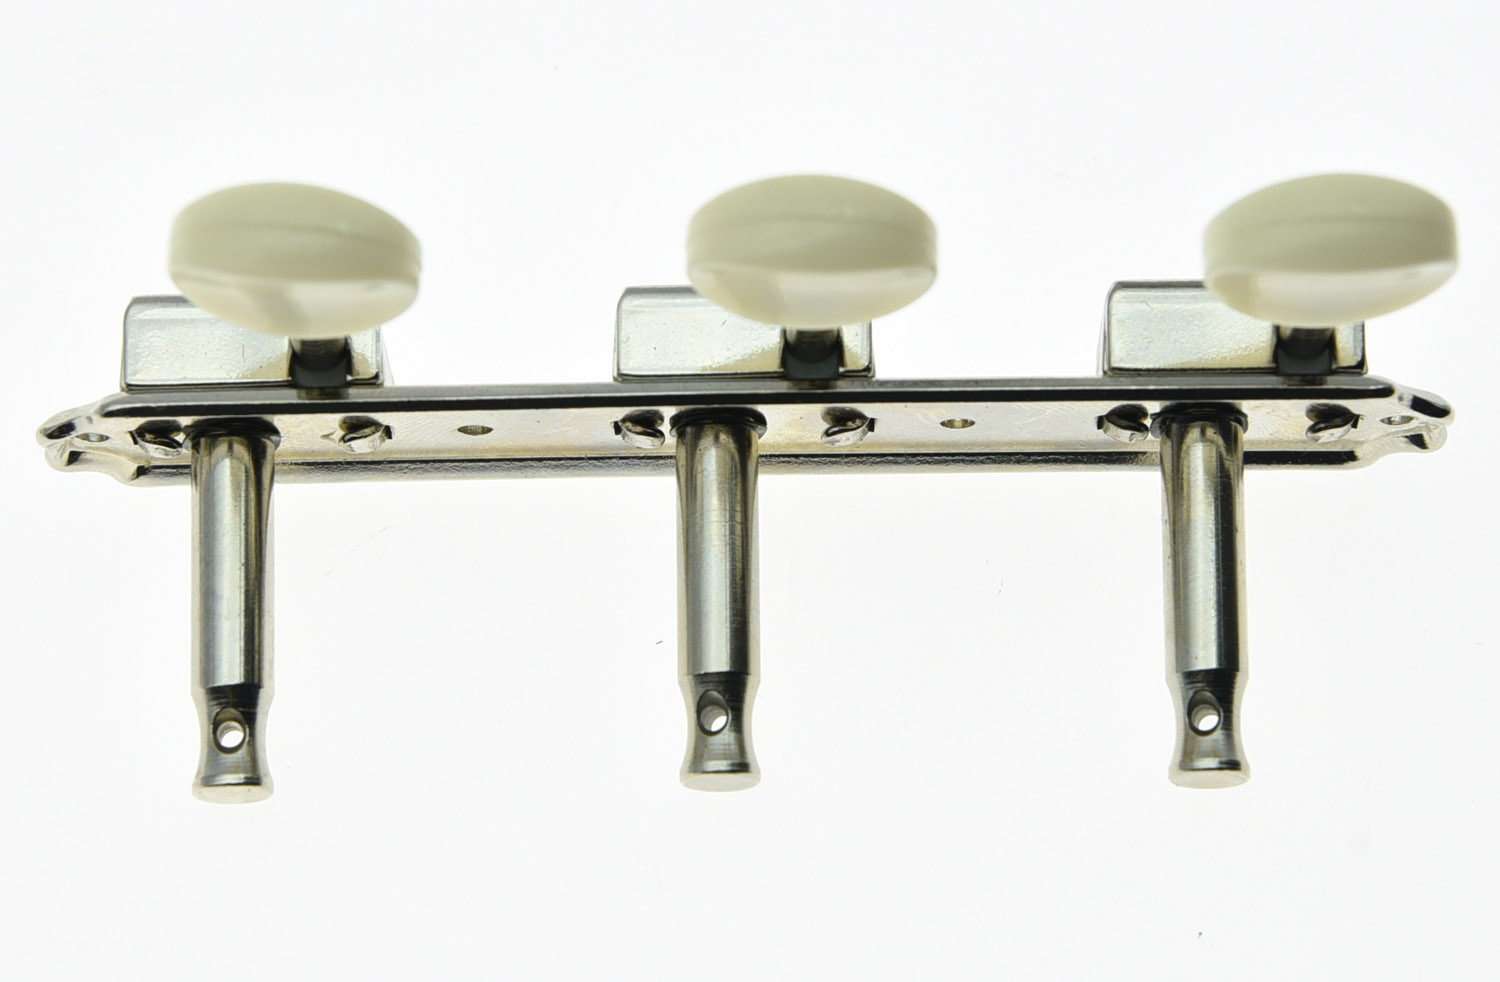 Купить с кэшбэком KAISH Nickel w/ Ivory Vintage 3 on a Plate 3x3 Guitar Tuning Keys Tuners for LP SG JR